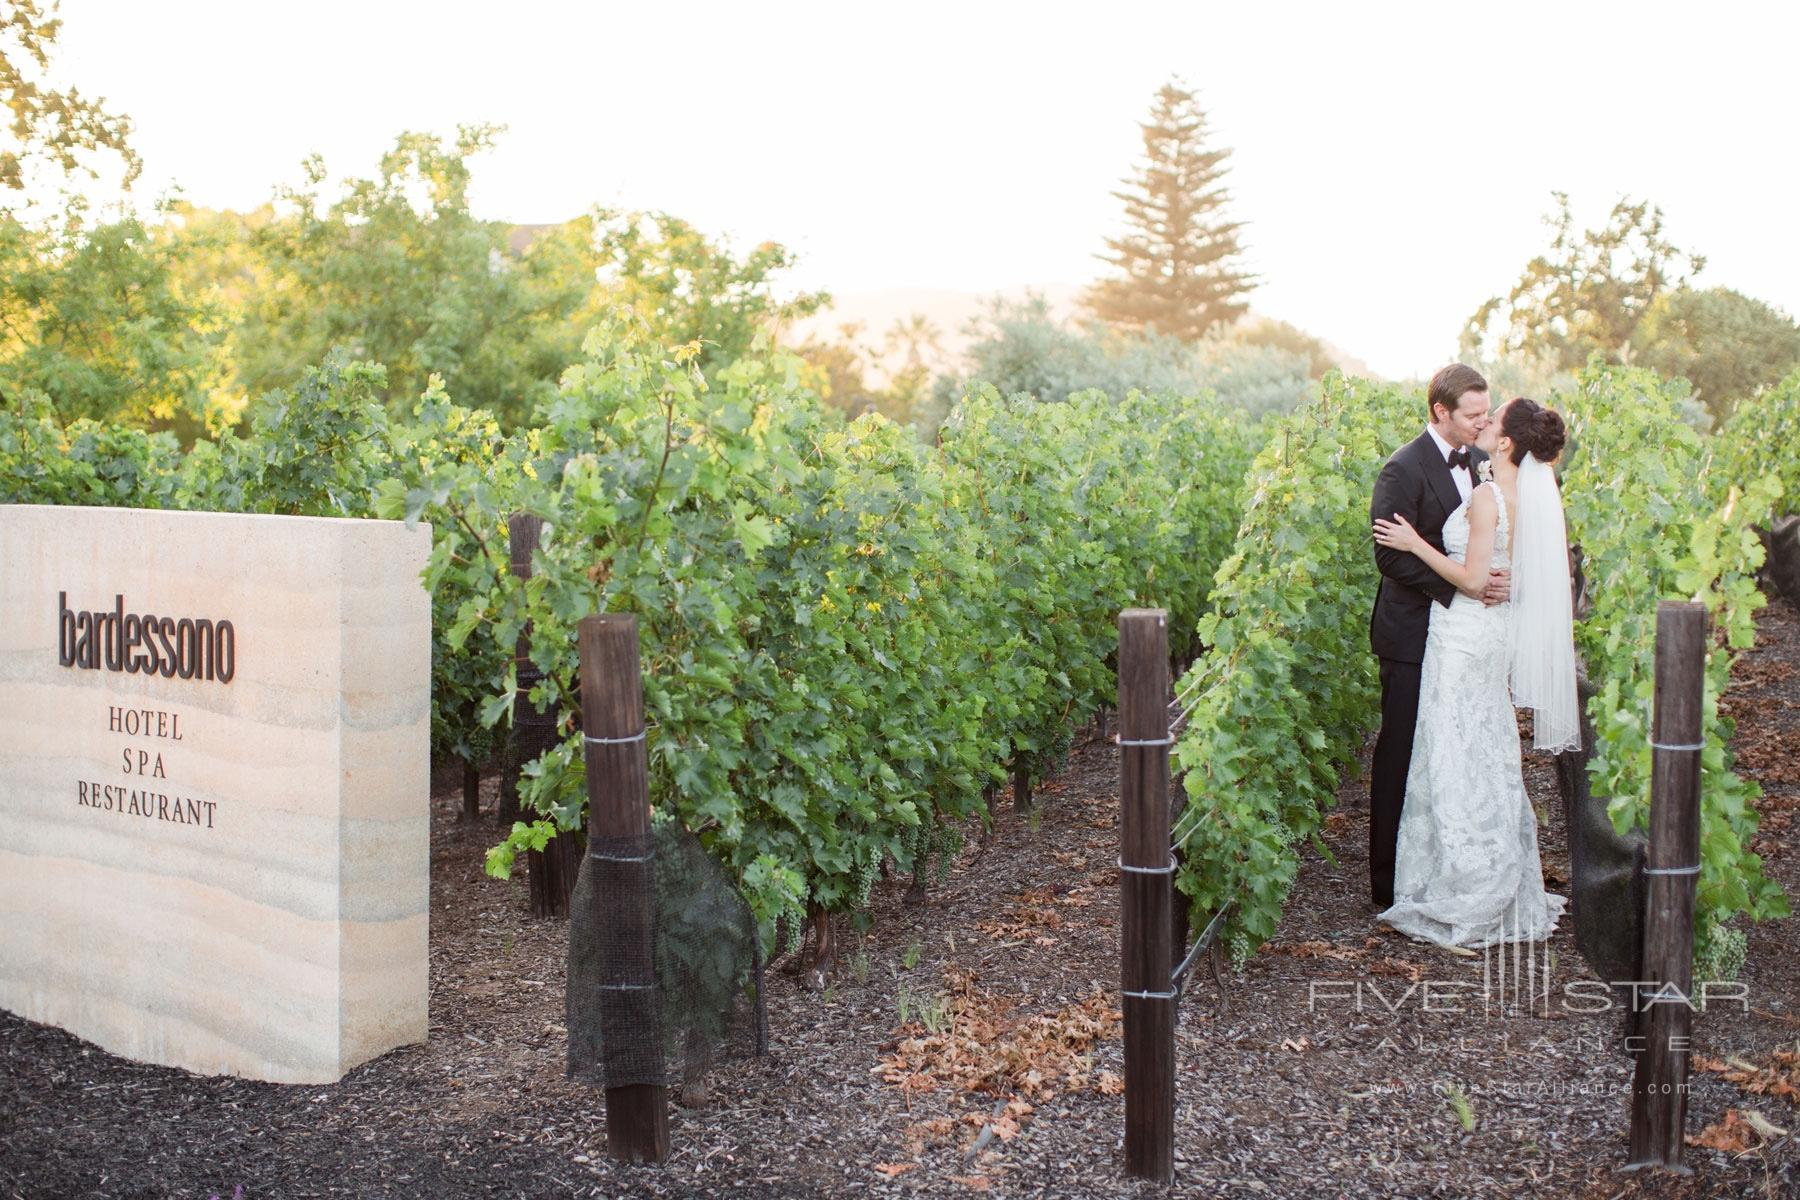 A vineyard wedding at Bardessono in Yountville, Napa Valley